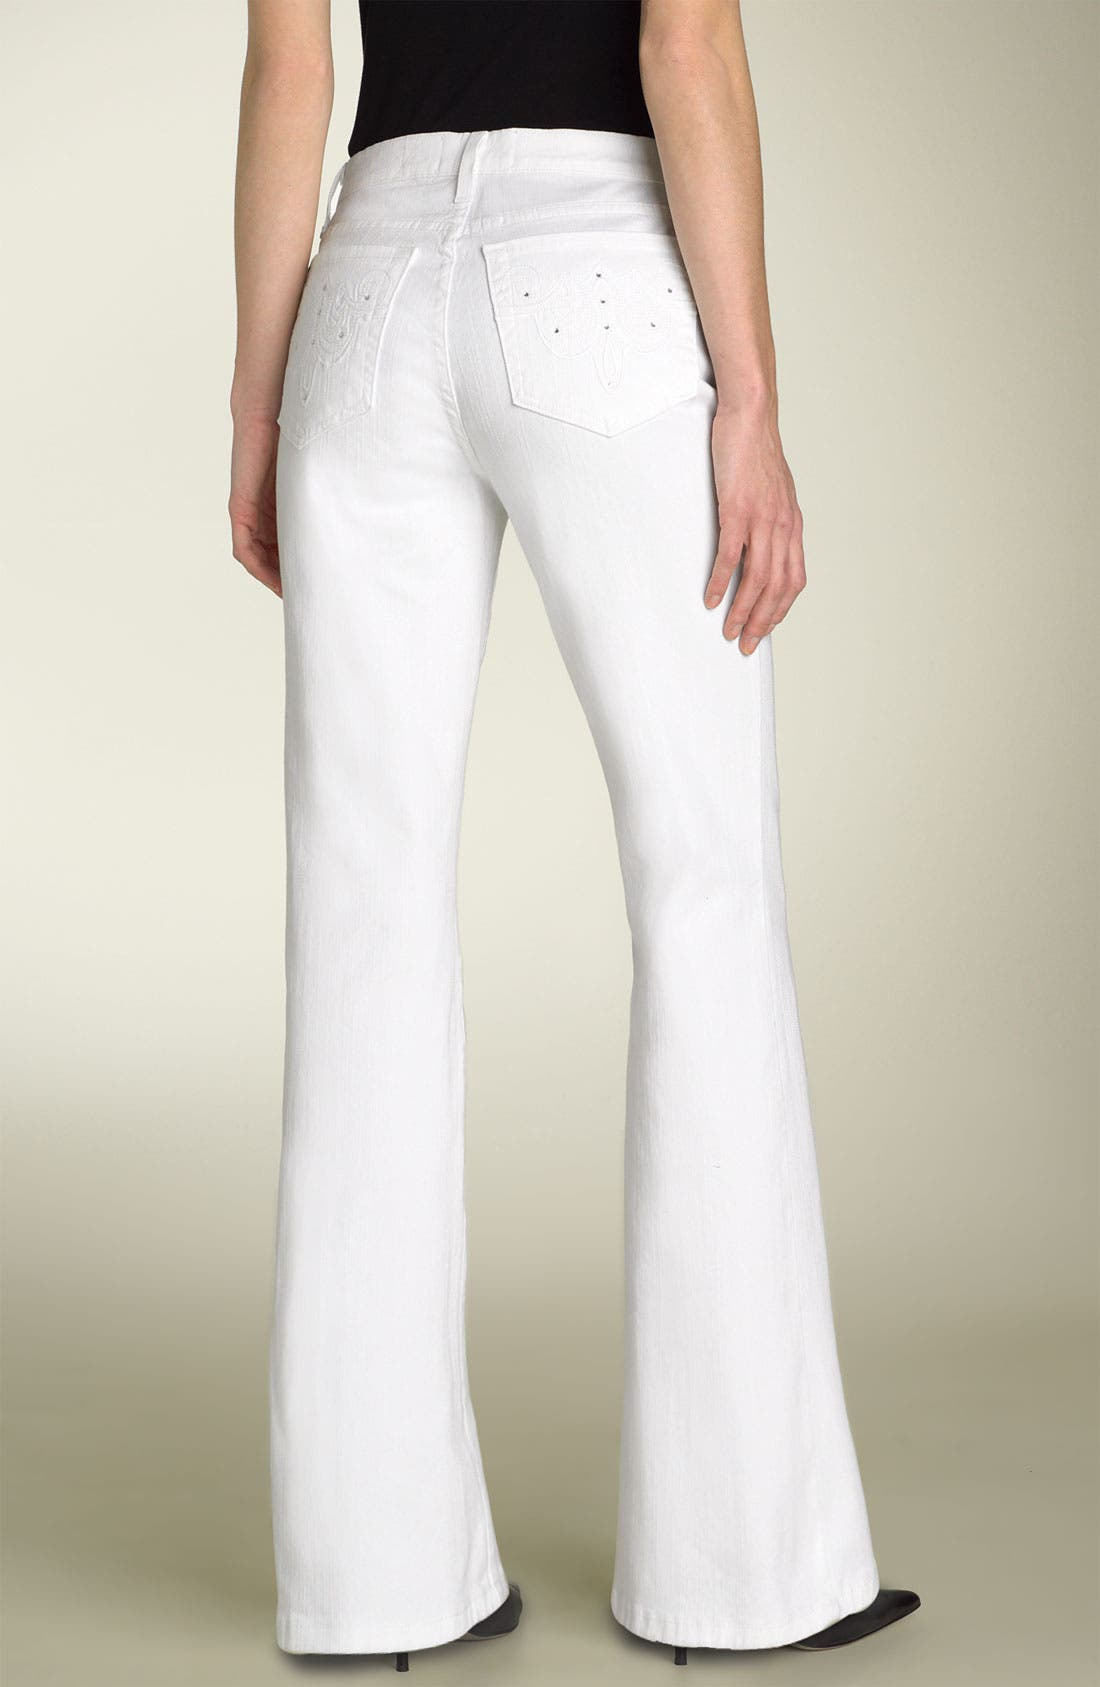 Alternate Image 1 Selected - Not Your Daughter's Jeans® Tummy Tuck® Rhinestone Bootcut Jeans (Petite)